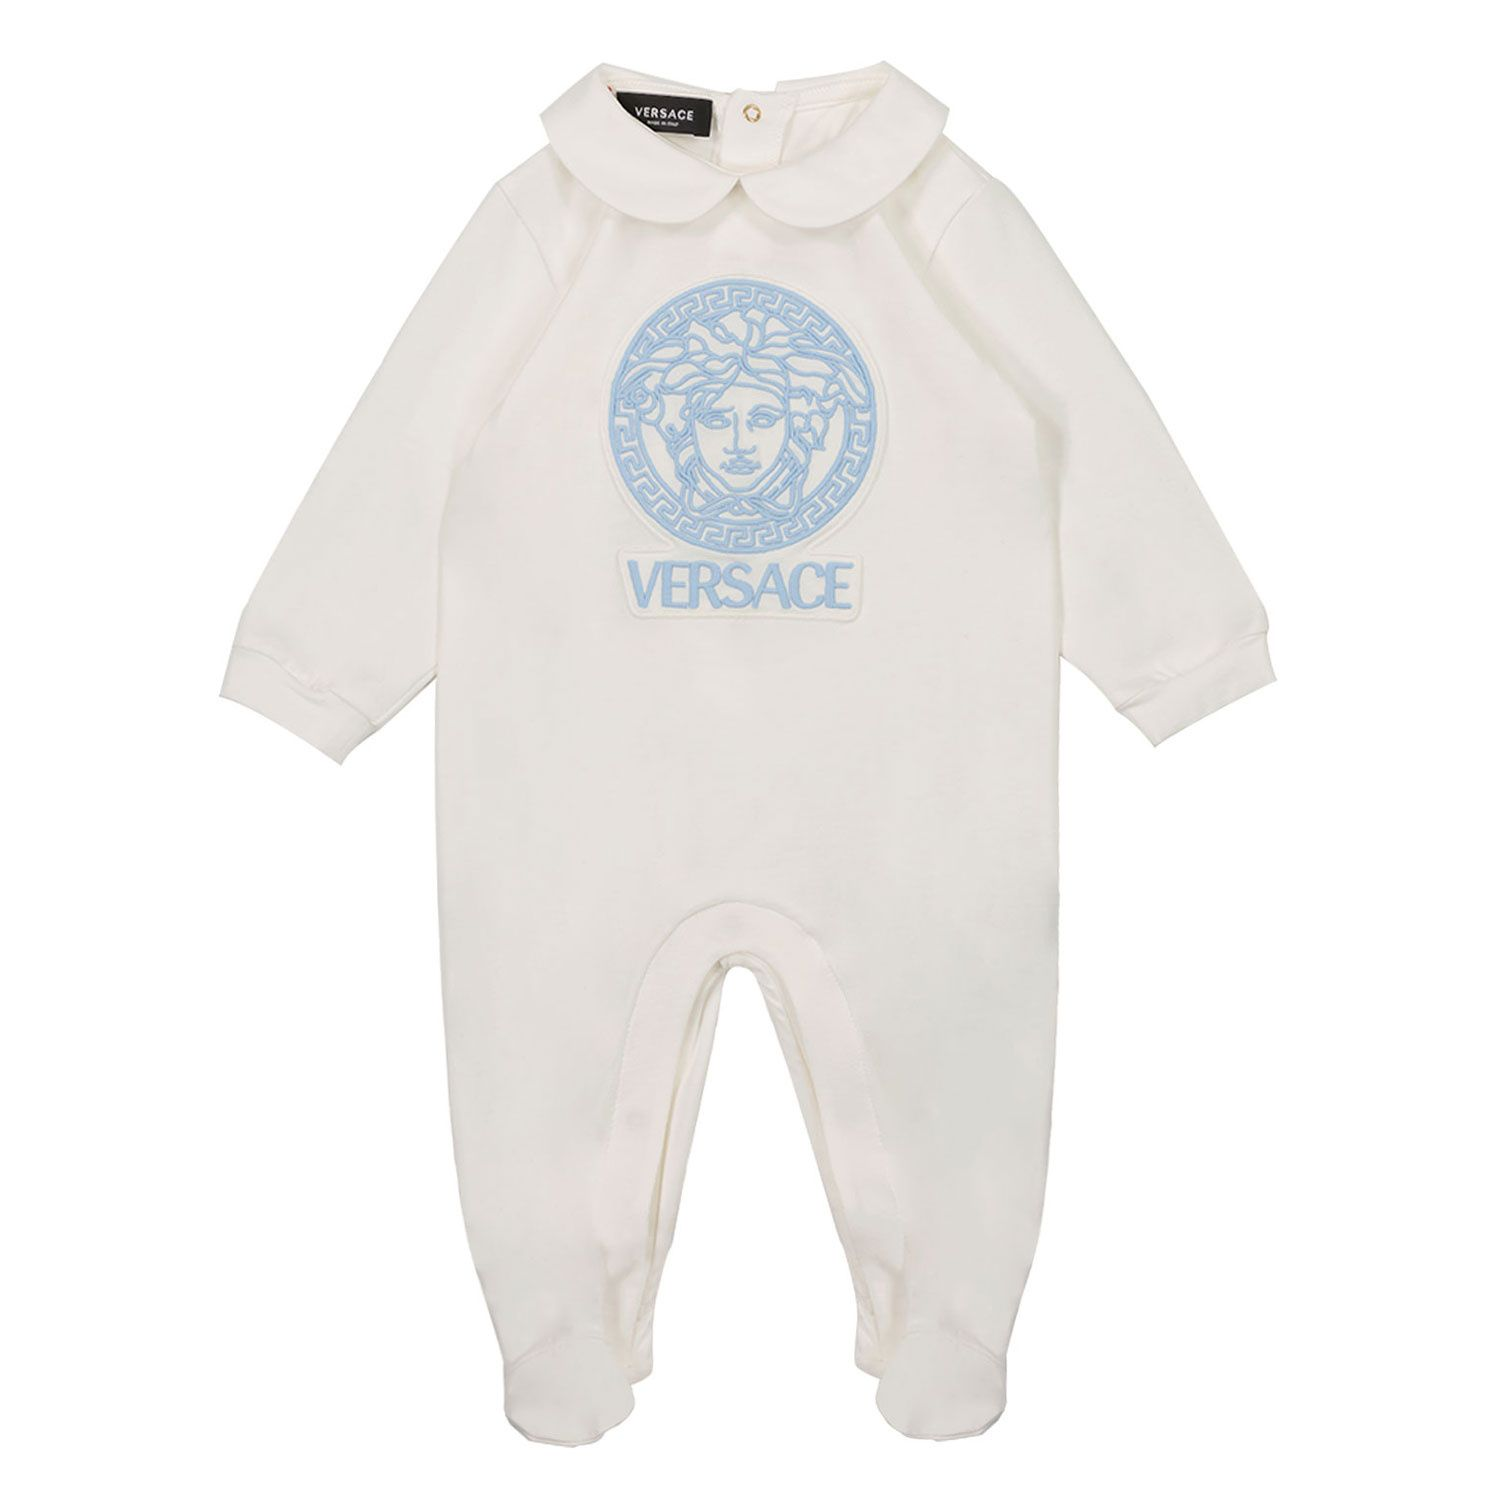 Picture of Versace 1A00230 baby playsuit light blue